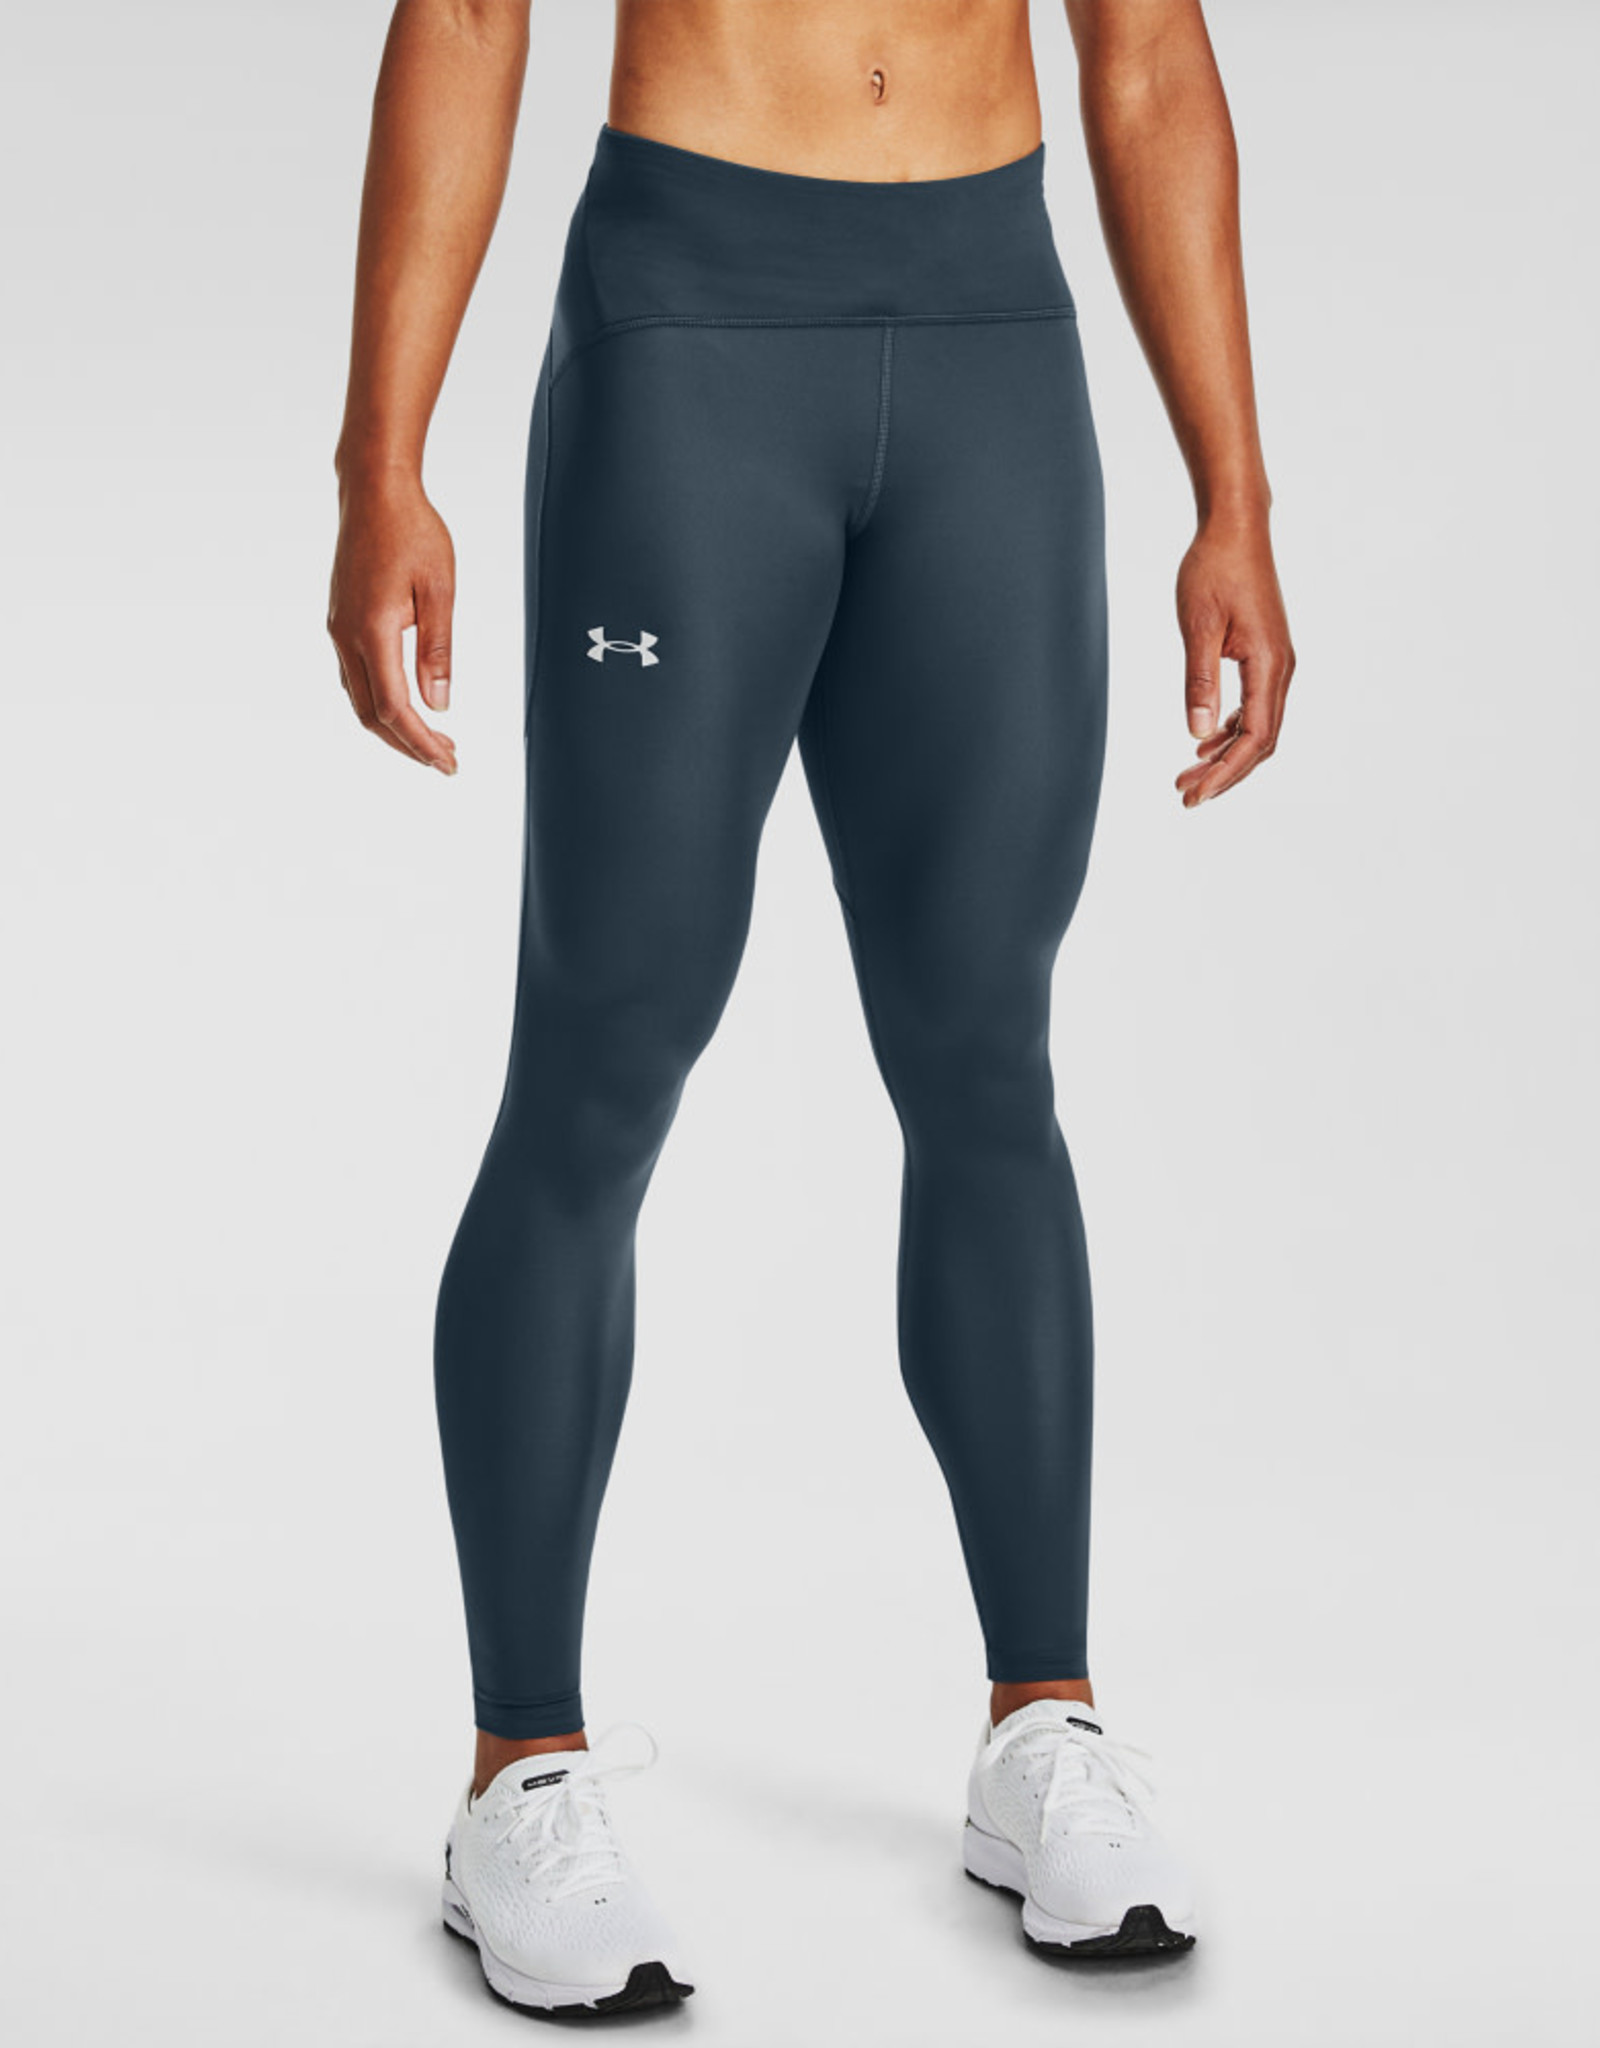 Under Armour UA Fly Fast 2.0 CG Tight - Mechanic Blue-Mechanic Blue-Reflective